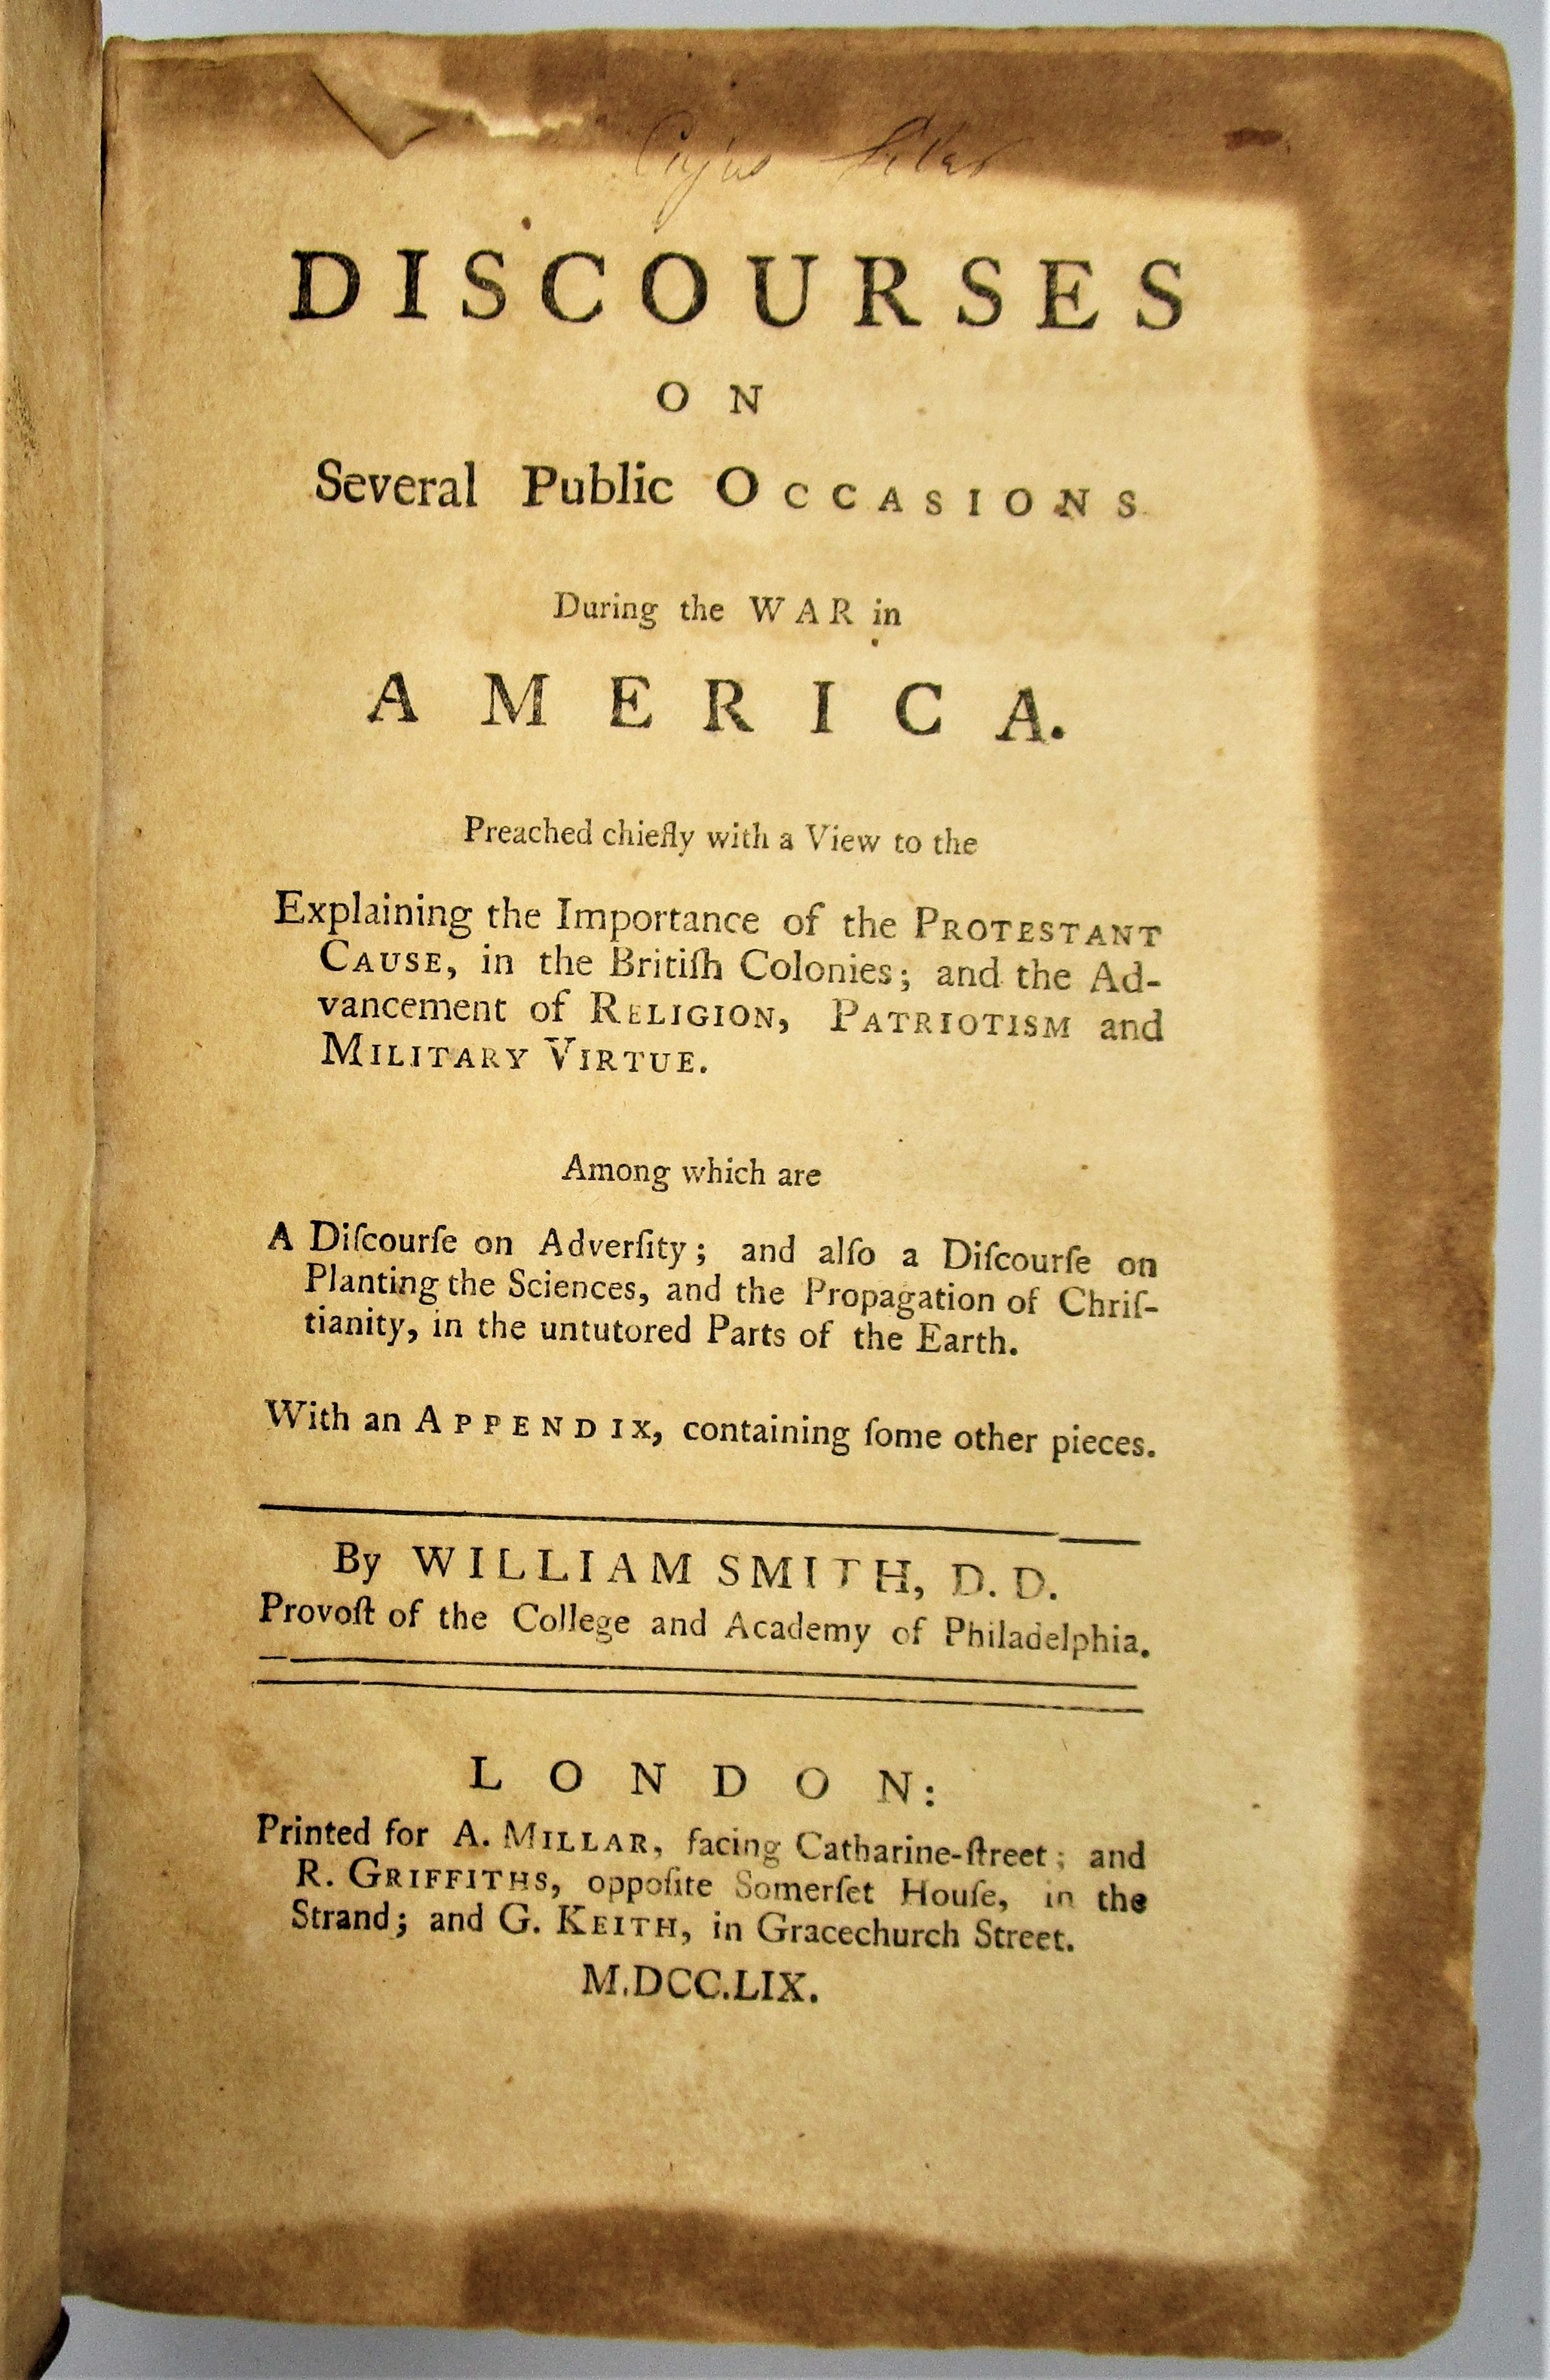 DISCOURSES DURING THE WAR IN AMERICA, by William Smith - 1759 [1st Ed]